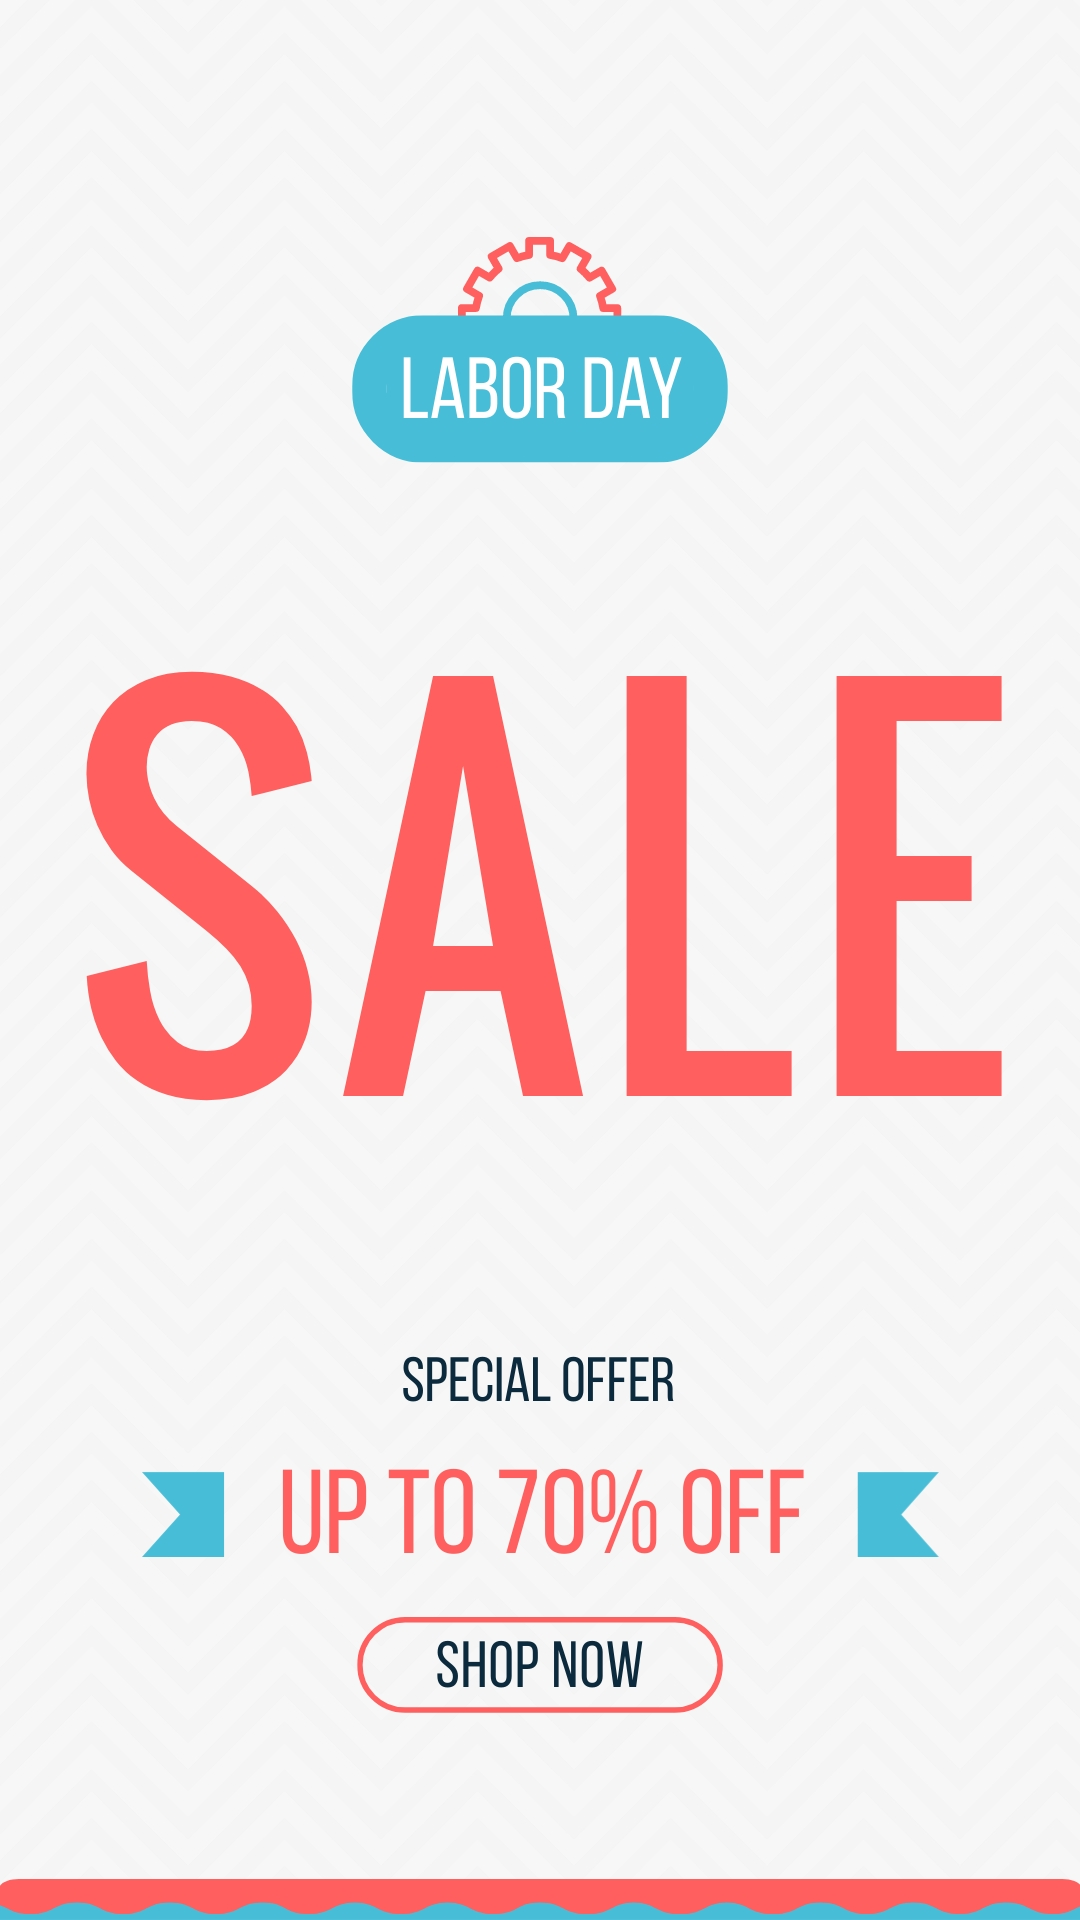 Labor Day Offer Animated Vertical Template